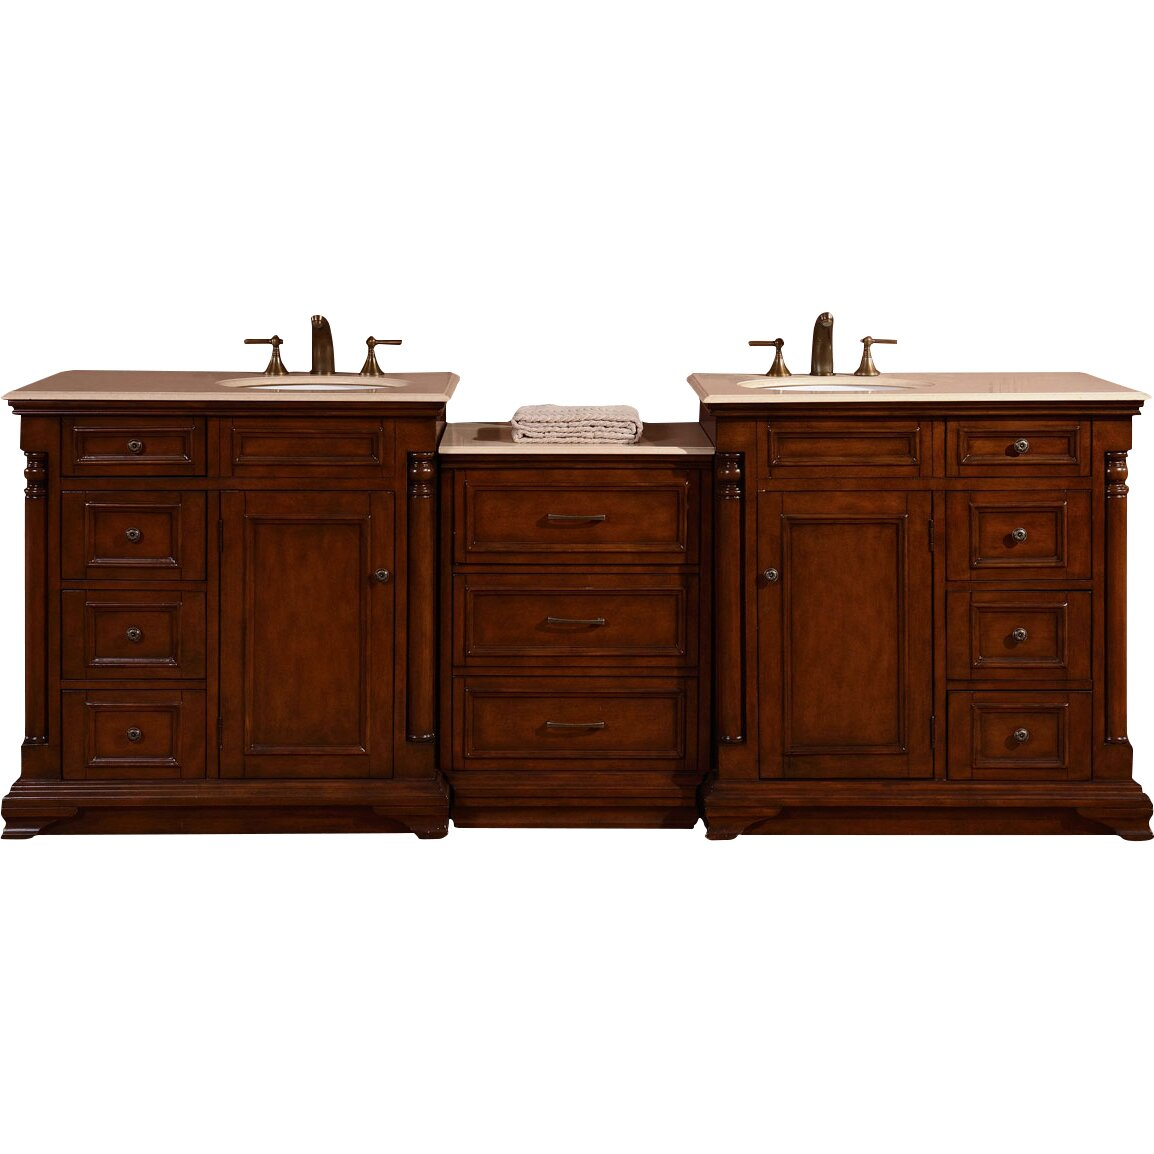 Silkroad Exclusive 92 5 Double Lavatory Sink Cabinet